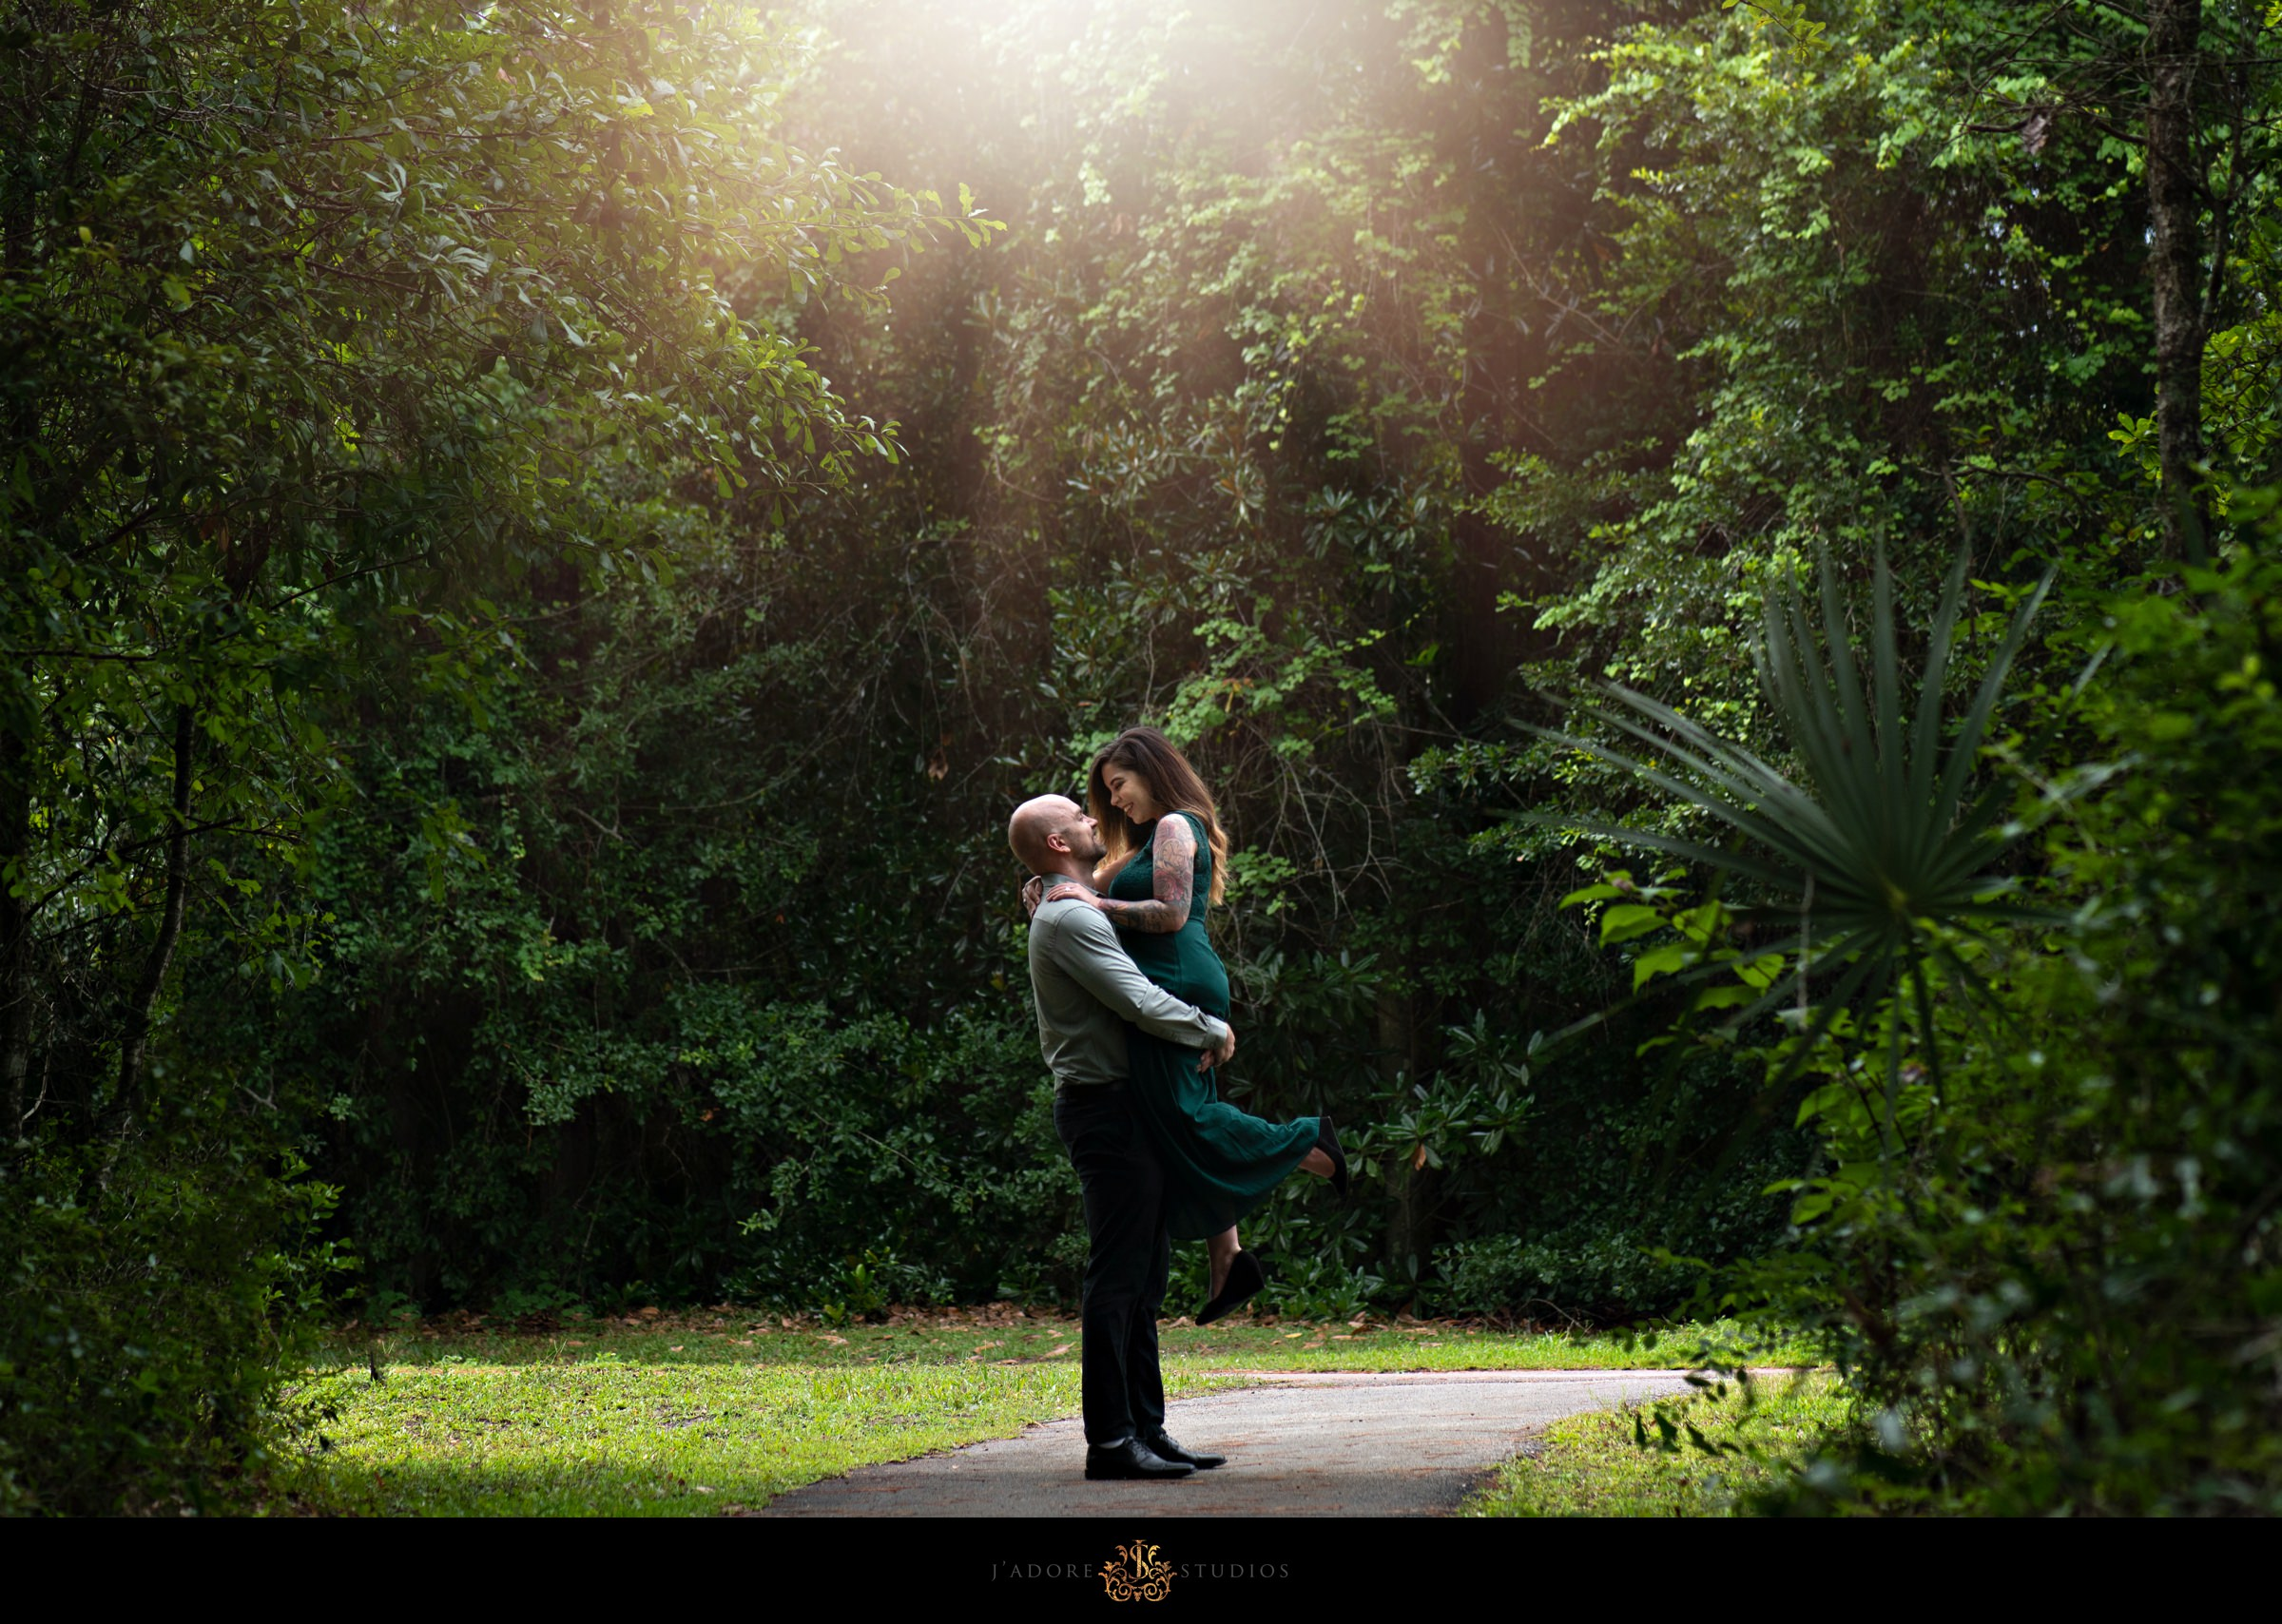 Husband picking up wife in front of green ivy with rays of sunshine at Alpine Grove Park